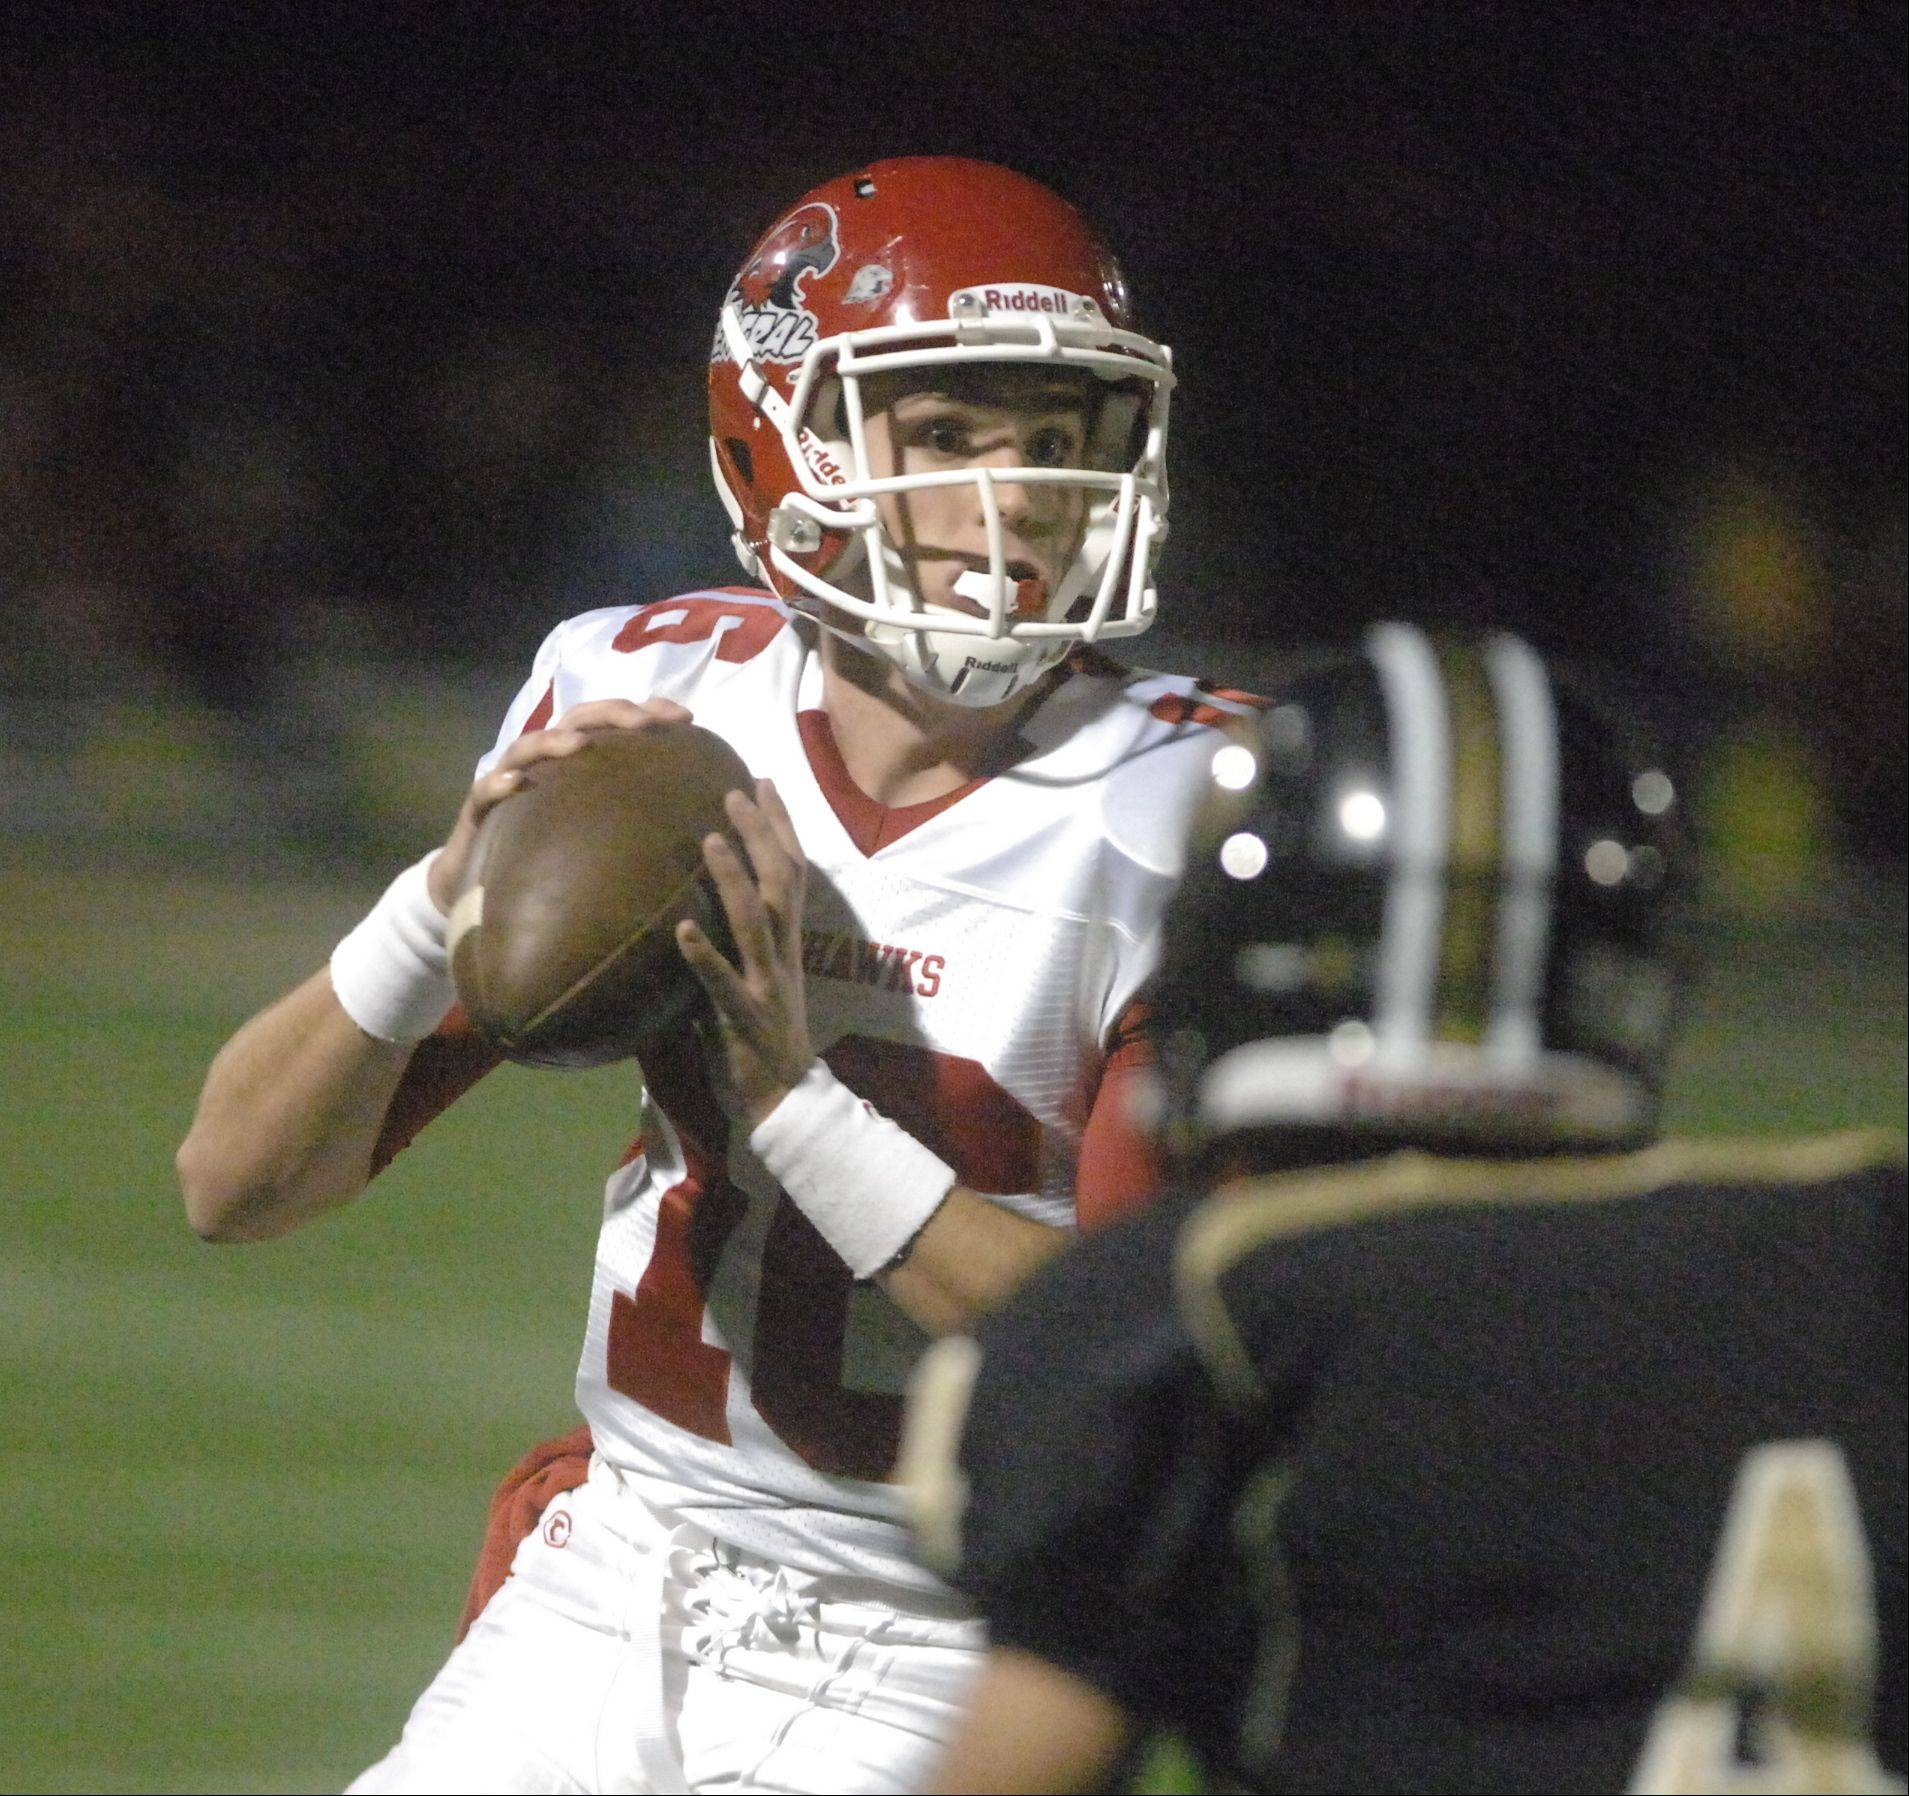 Photos from the Naperville Central at Glenbard North football Friday, September 28.